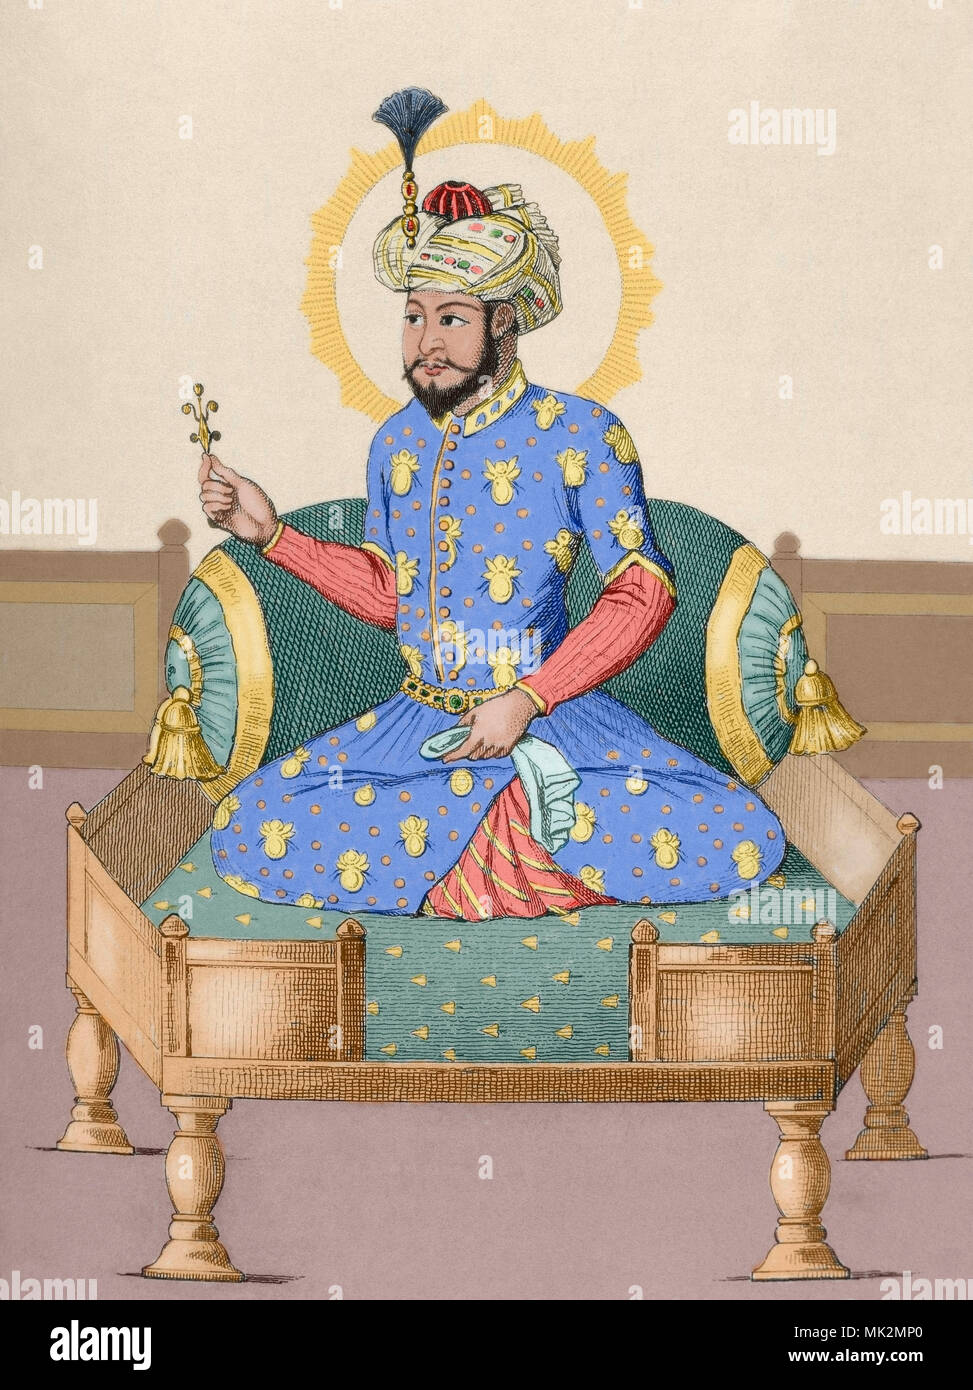 Timur (Transoxiana, 1336-Otrar, Timurid Empire, 1405). Turco-Mongol conqueror, also known as Amir Timur and Tamerlane (Timur the Lame). Founder of the Timunid Empire in Central Asia and Persia. Engraving of 1845. Later colouration.. - Stock Image